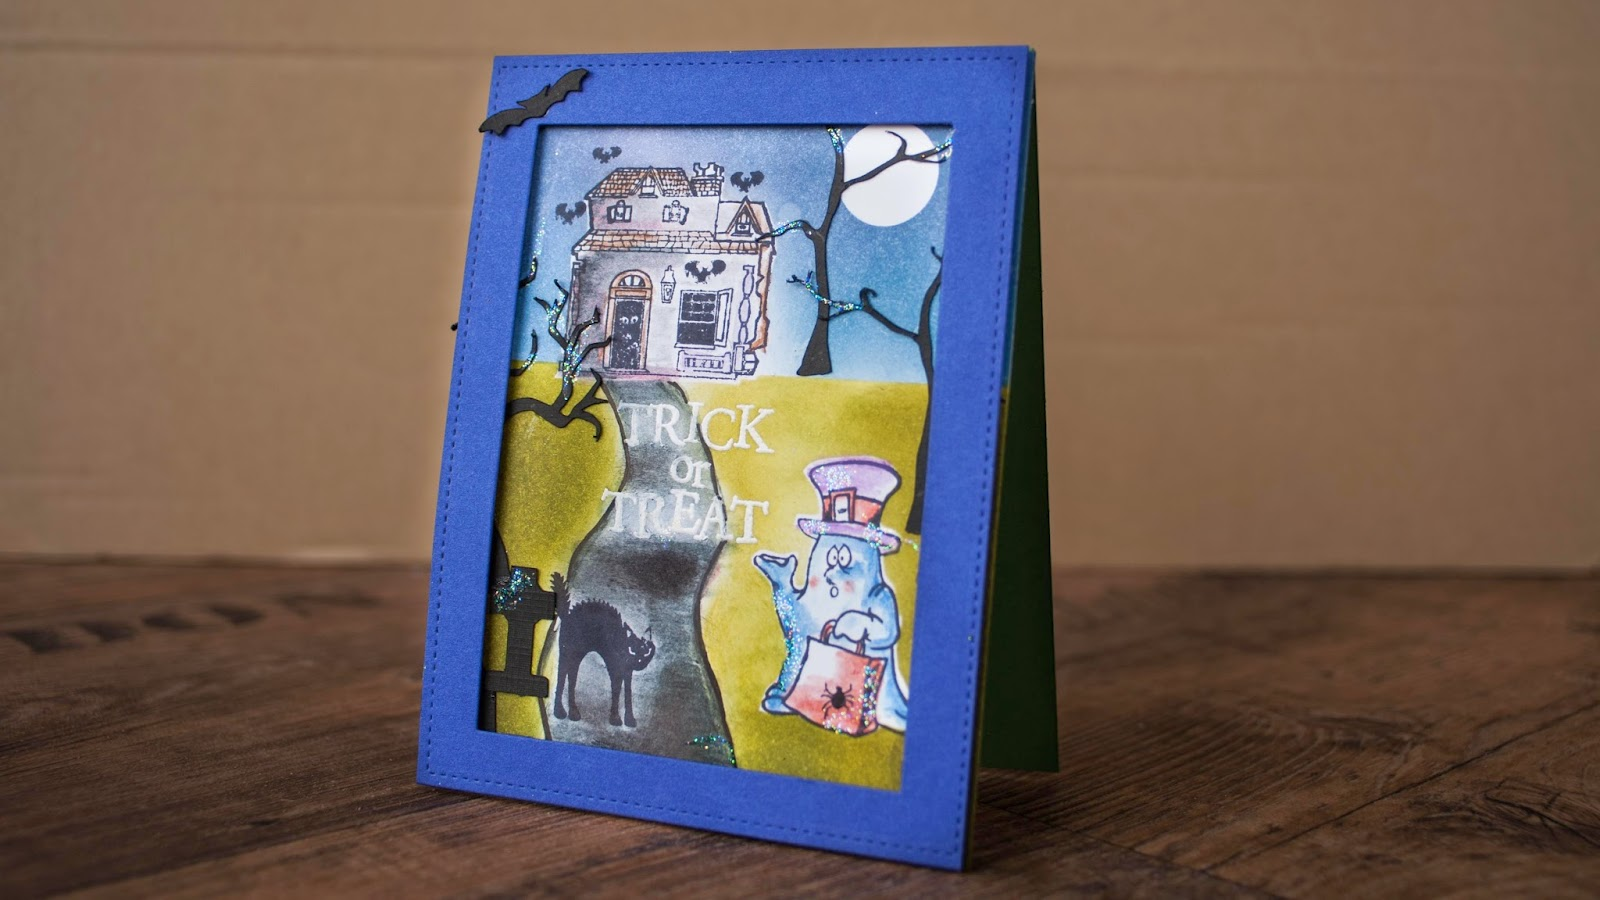 Halloween card #3 2014 - trick or treat the undecided ghost - and haunted house using distress inks and watercolor pencils